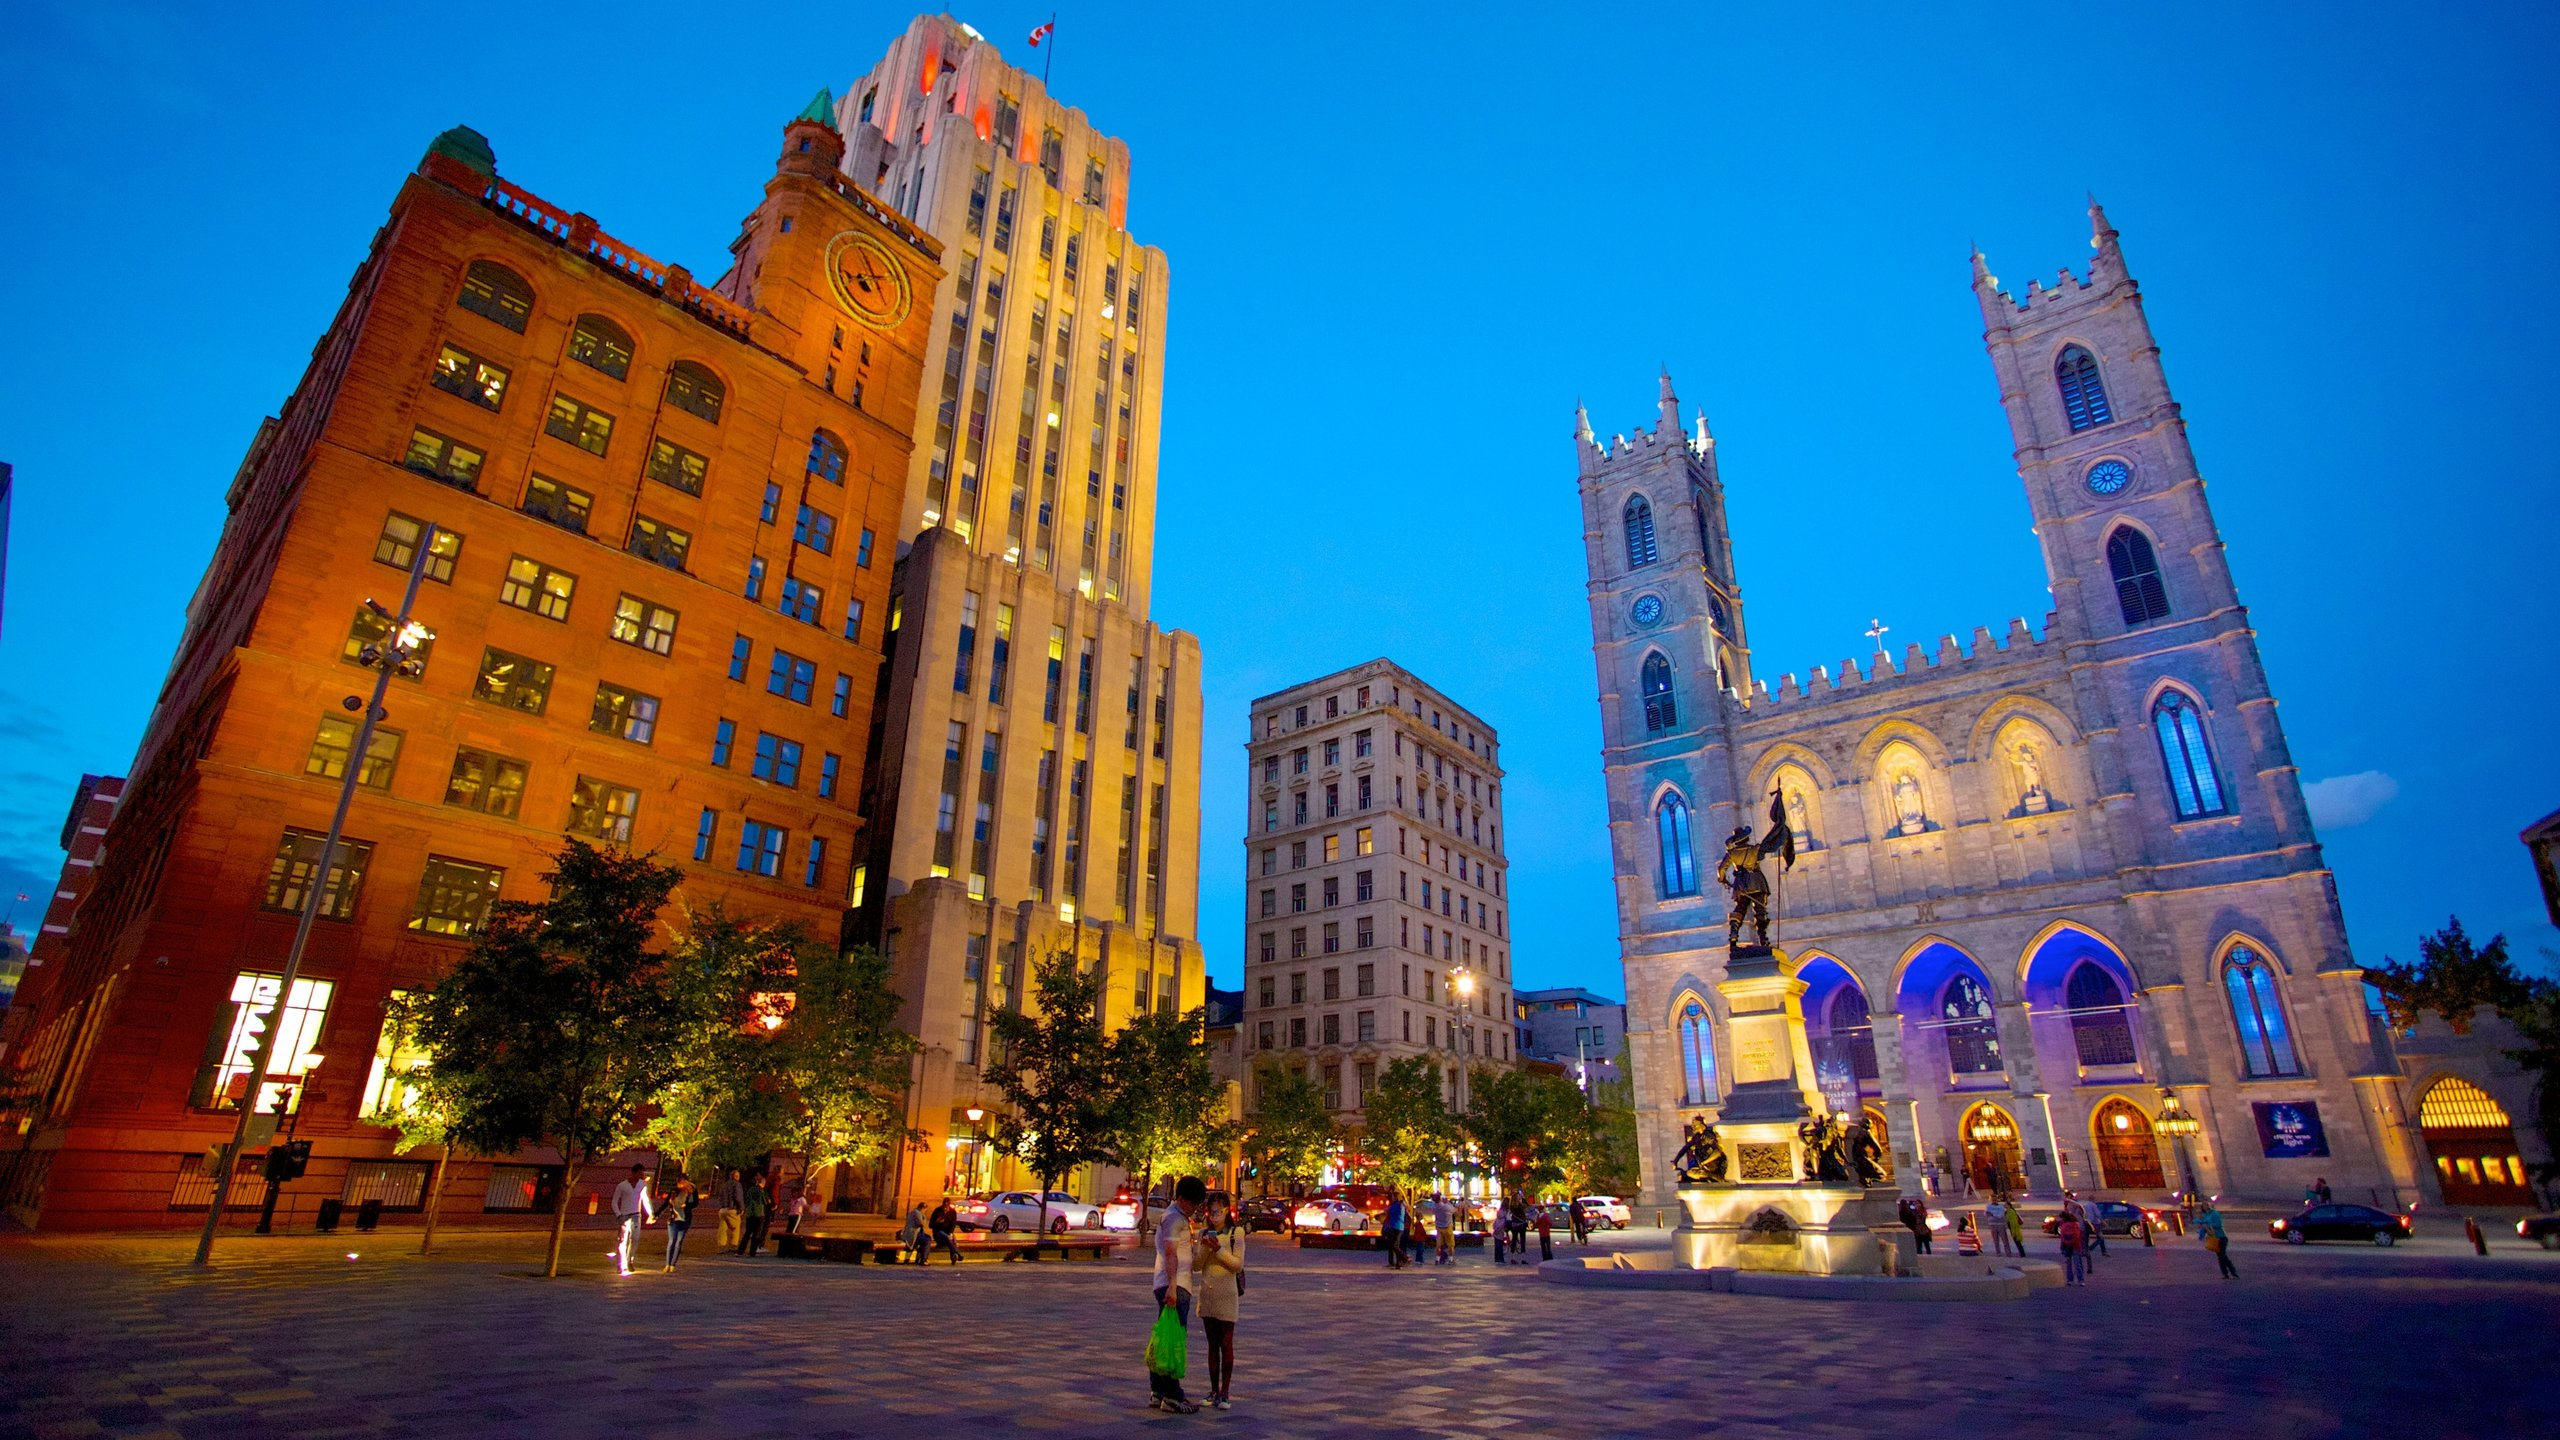 The incandescent blue and gold interior of Montreal's spiritual heart dazzles visitors and pilgrims. It was once the largest house of worship in North America.